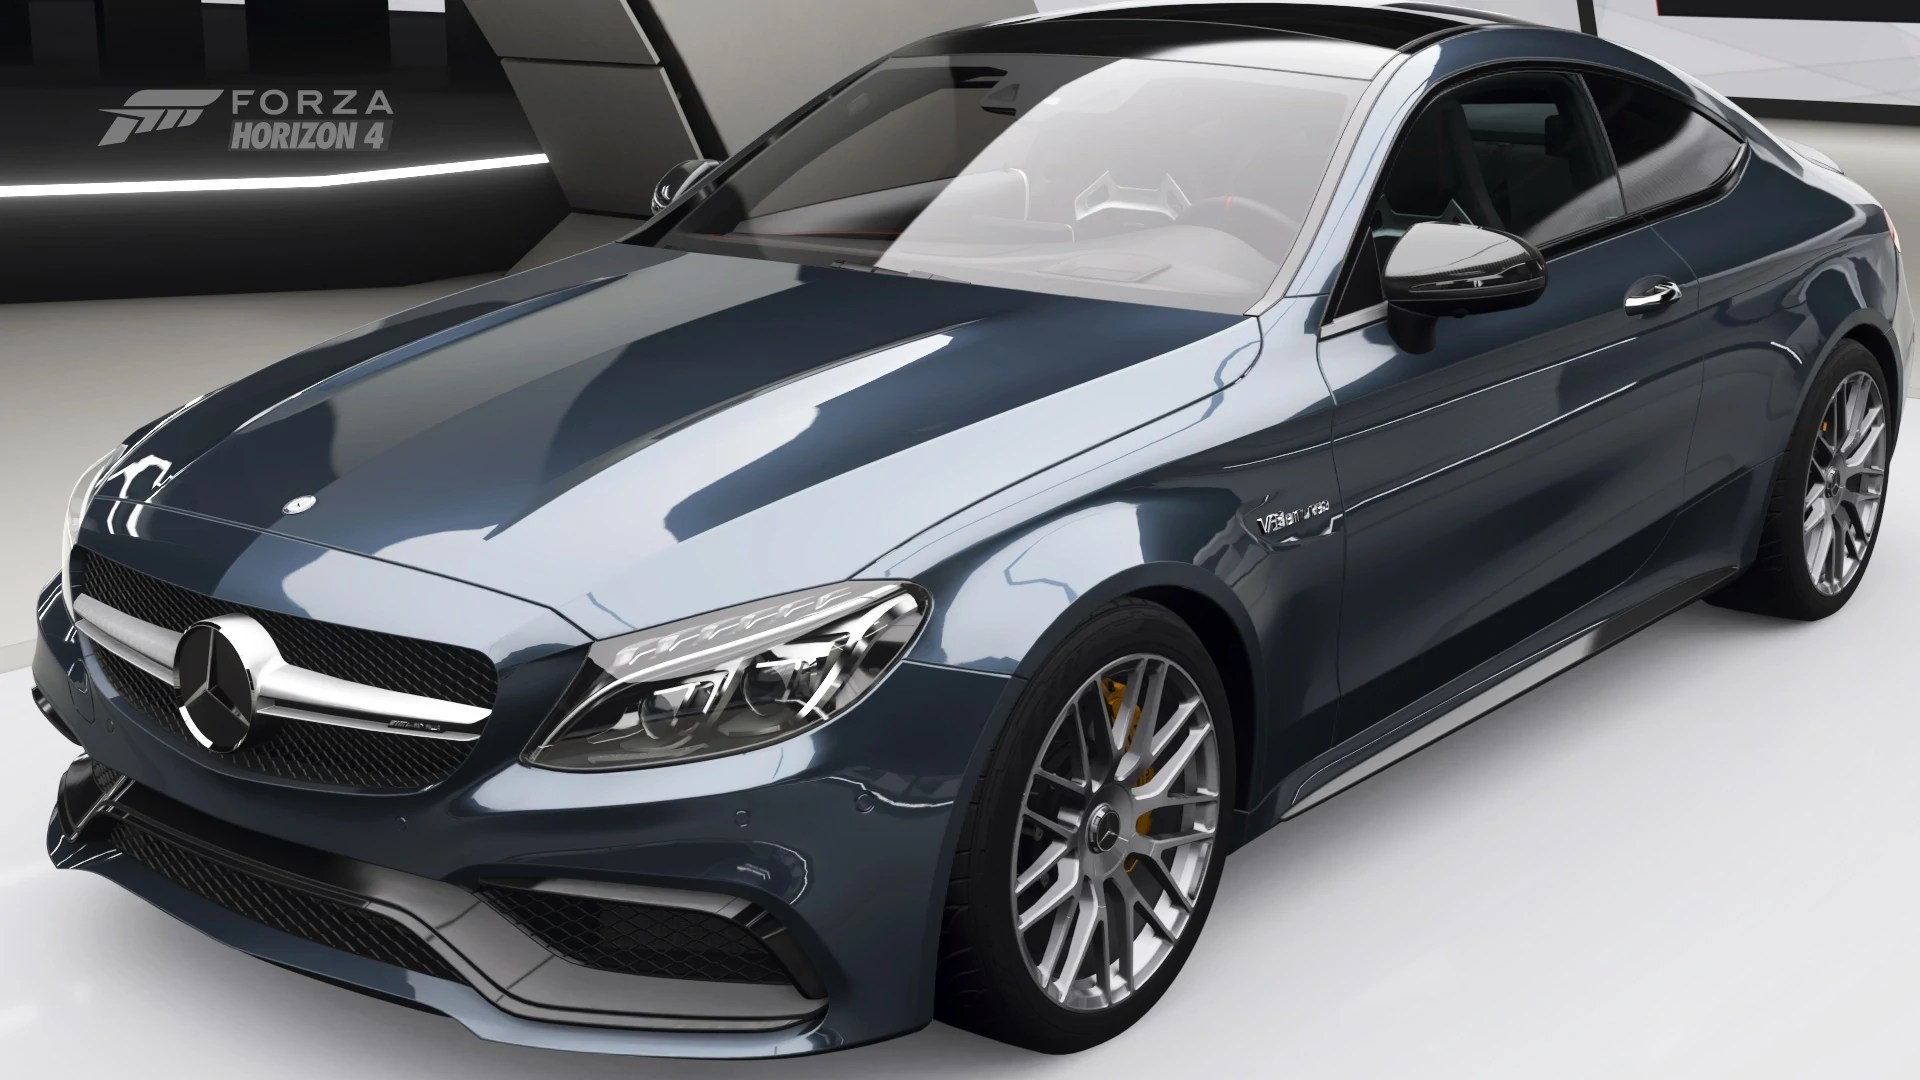 small resolution of mercedes amg c 63 s coup in forza horizon 4